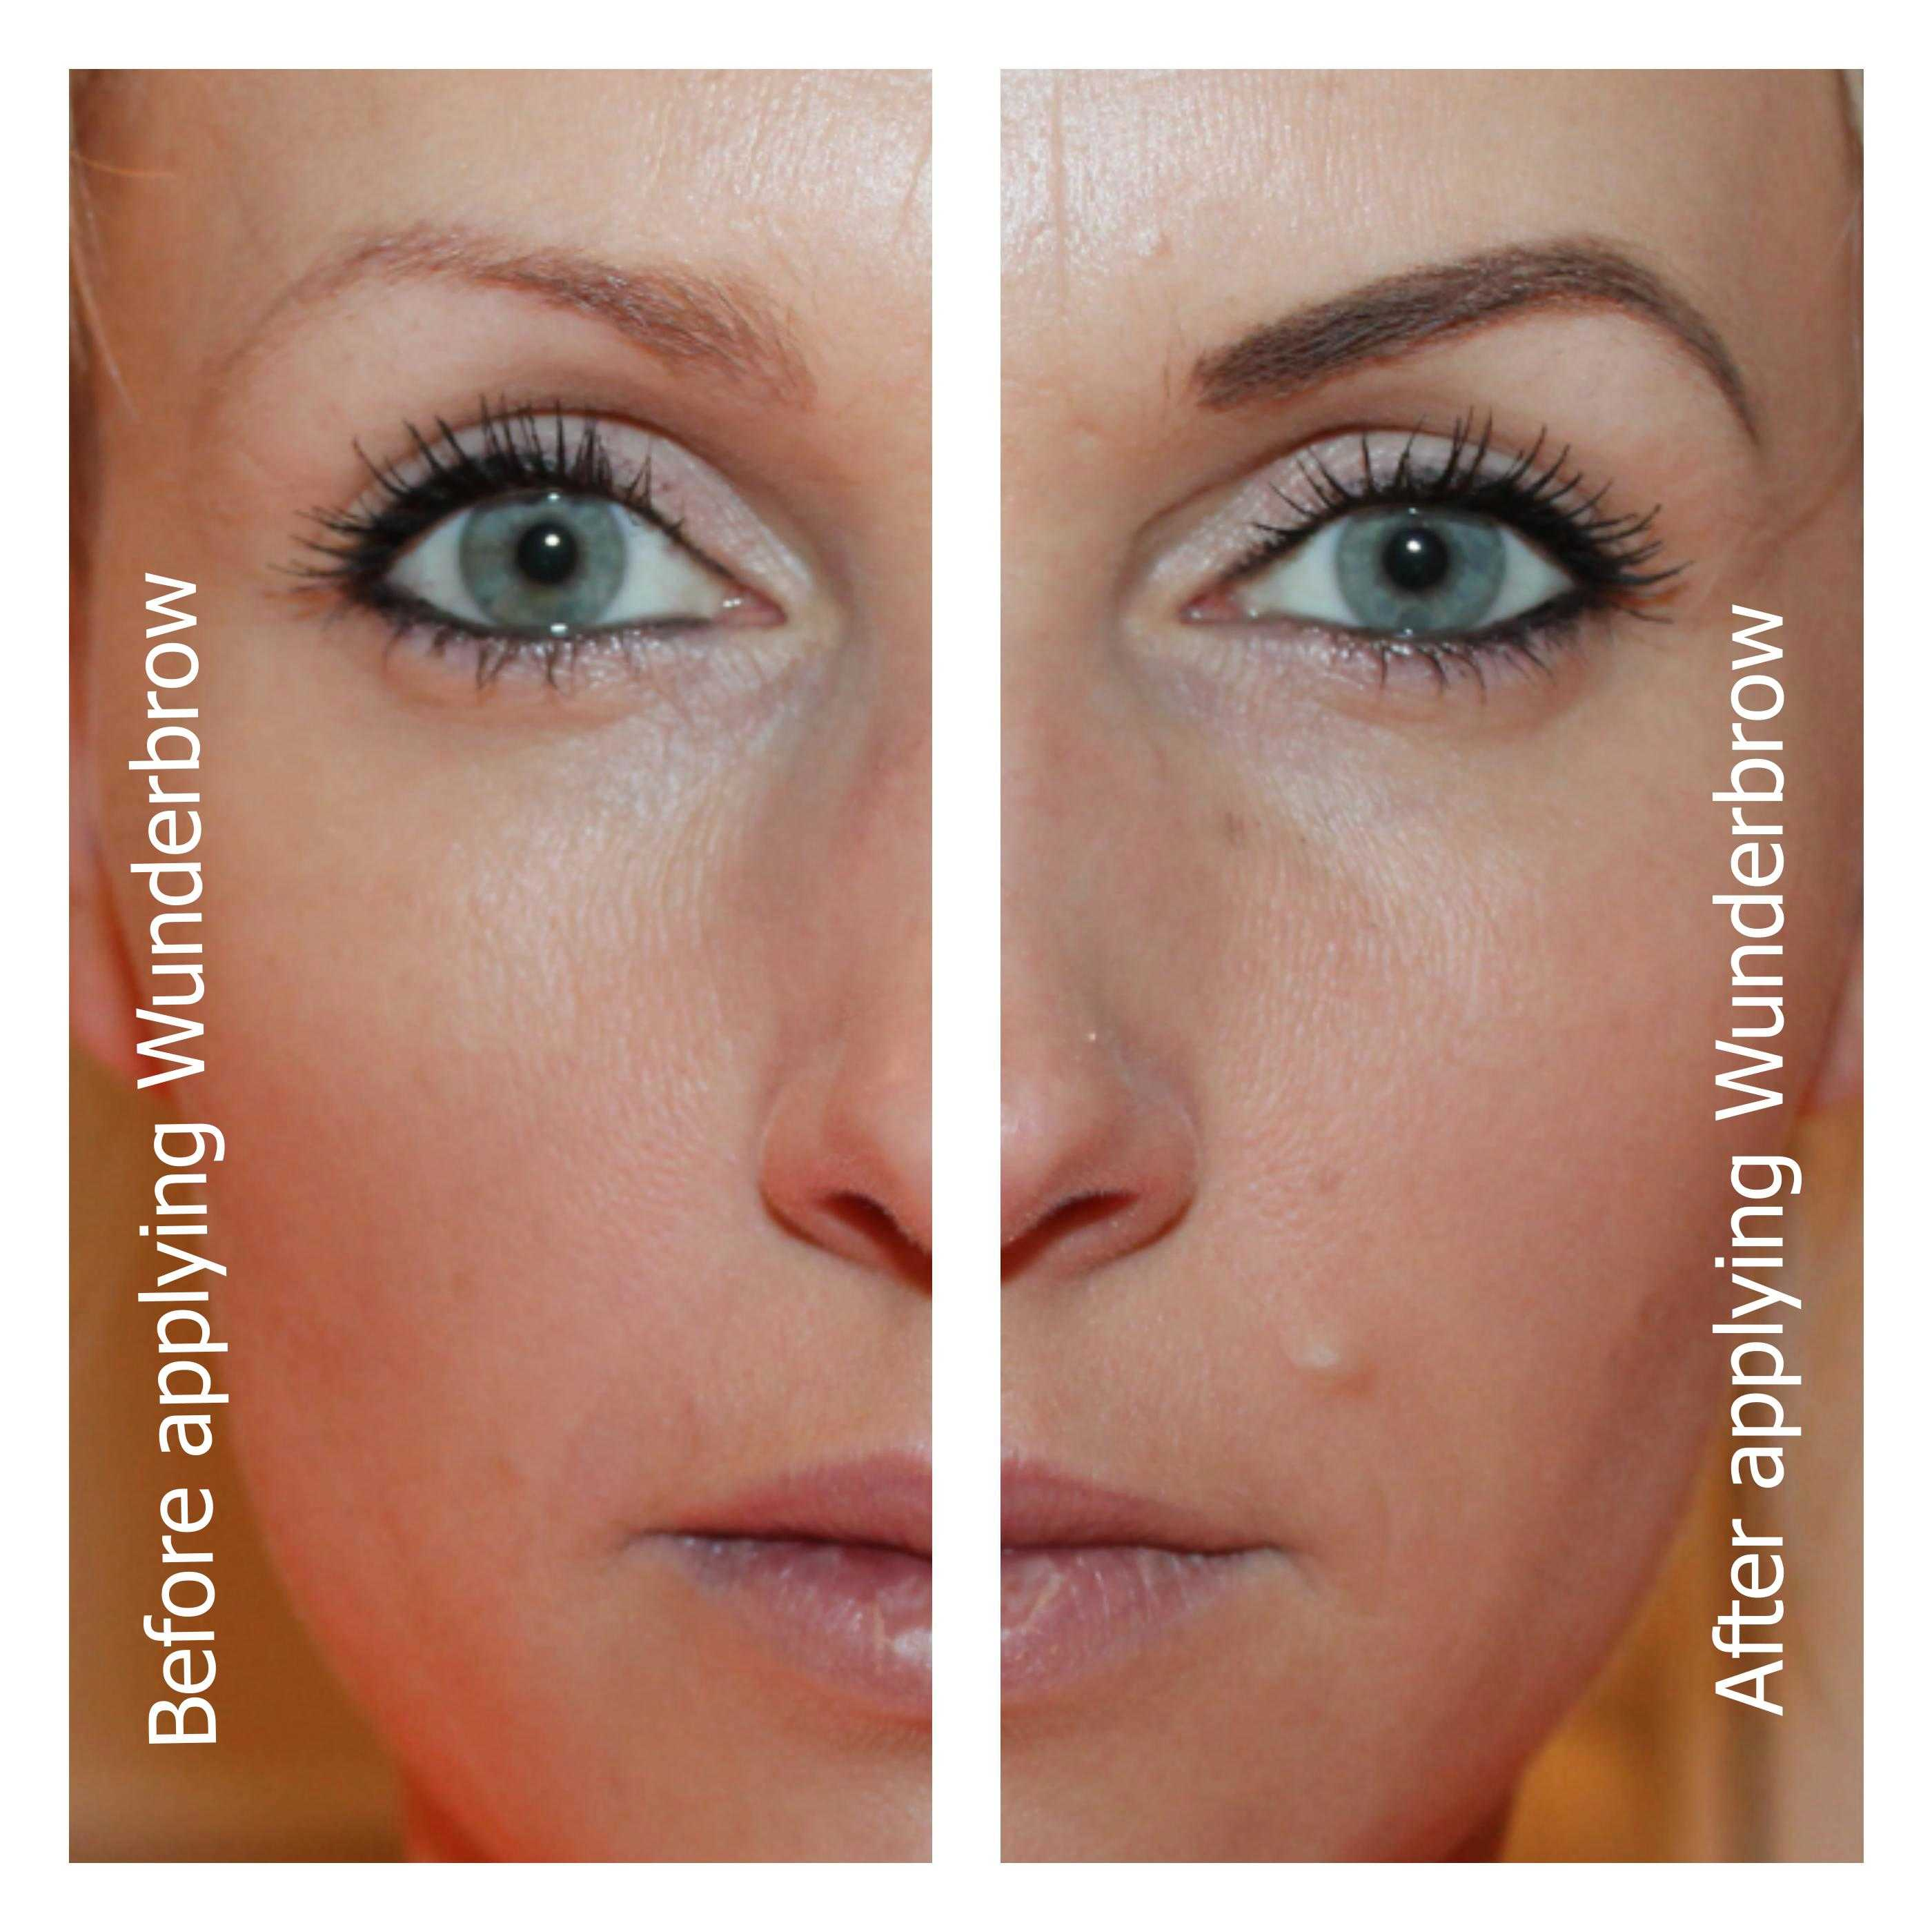 Semi Permanent Eyebrows In 2 Minutes Wunderbrow Review